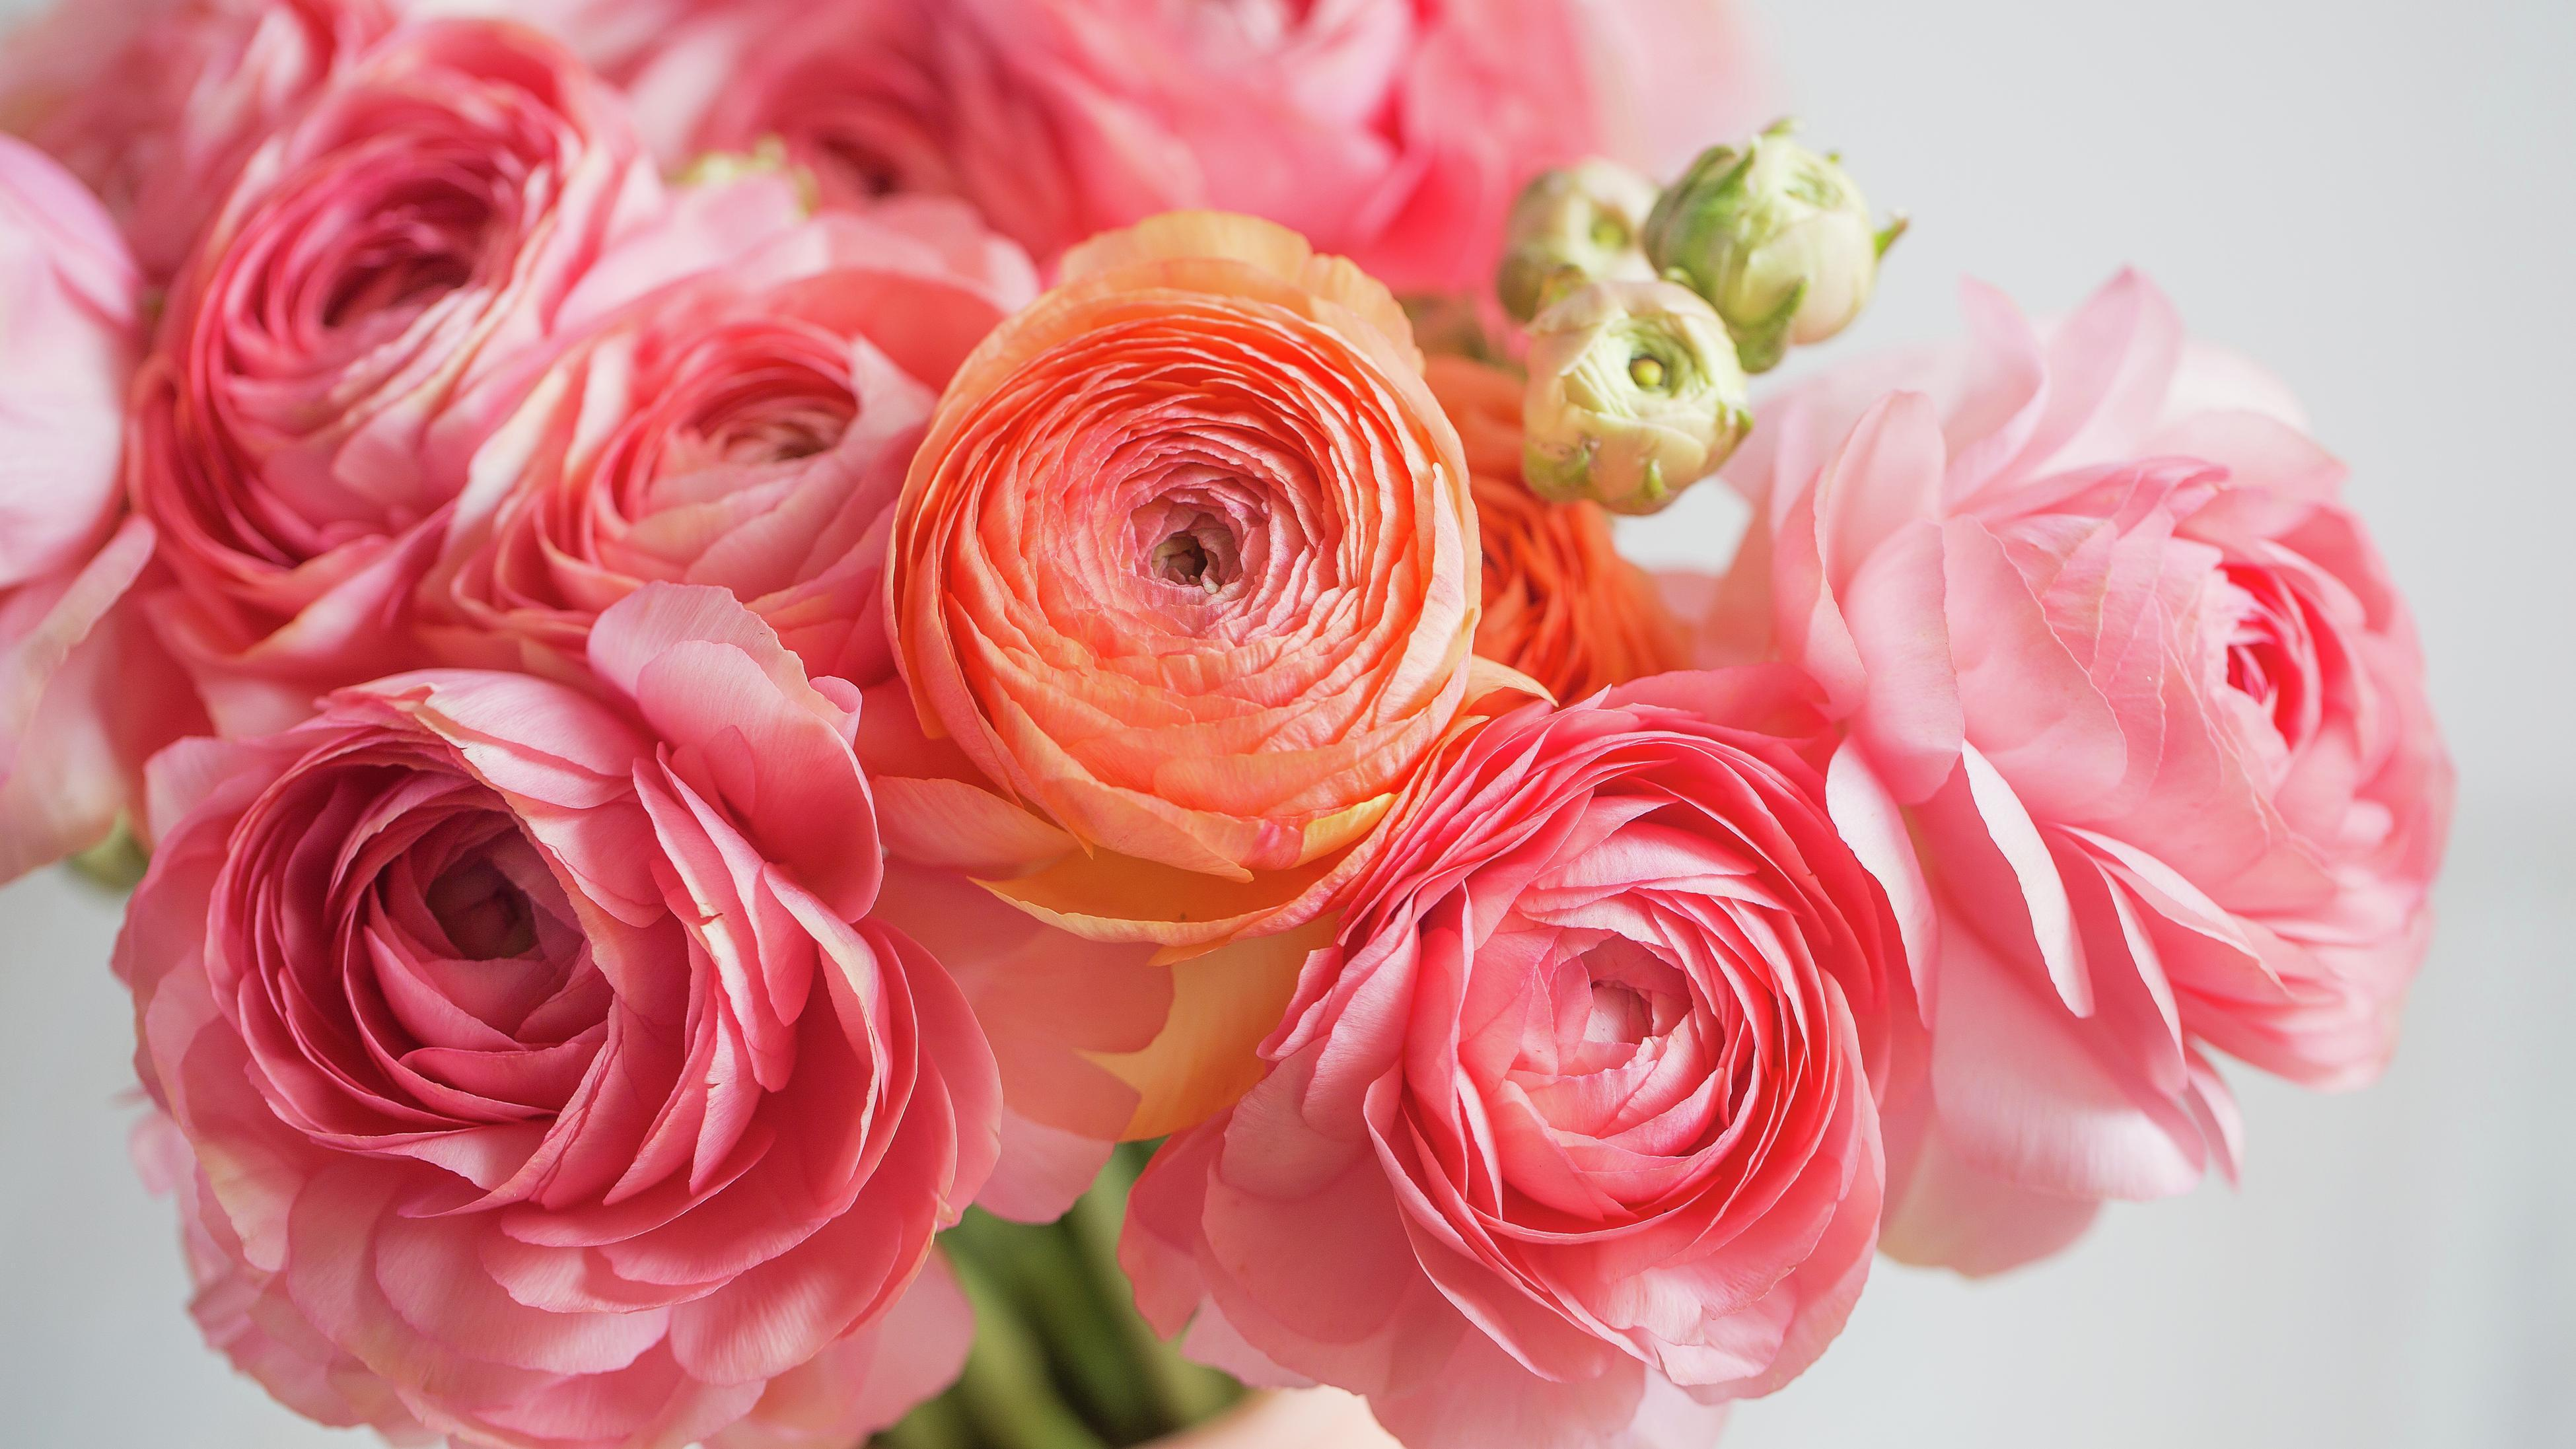 pastel pink ranunchulus flowers in close up